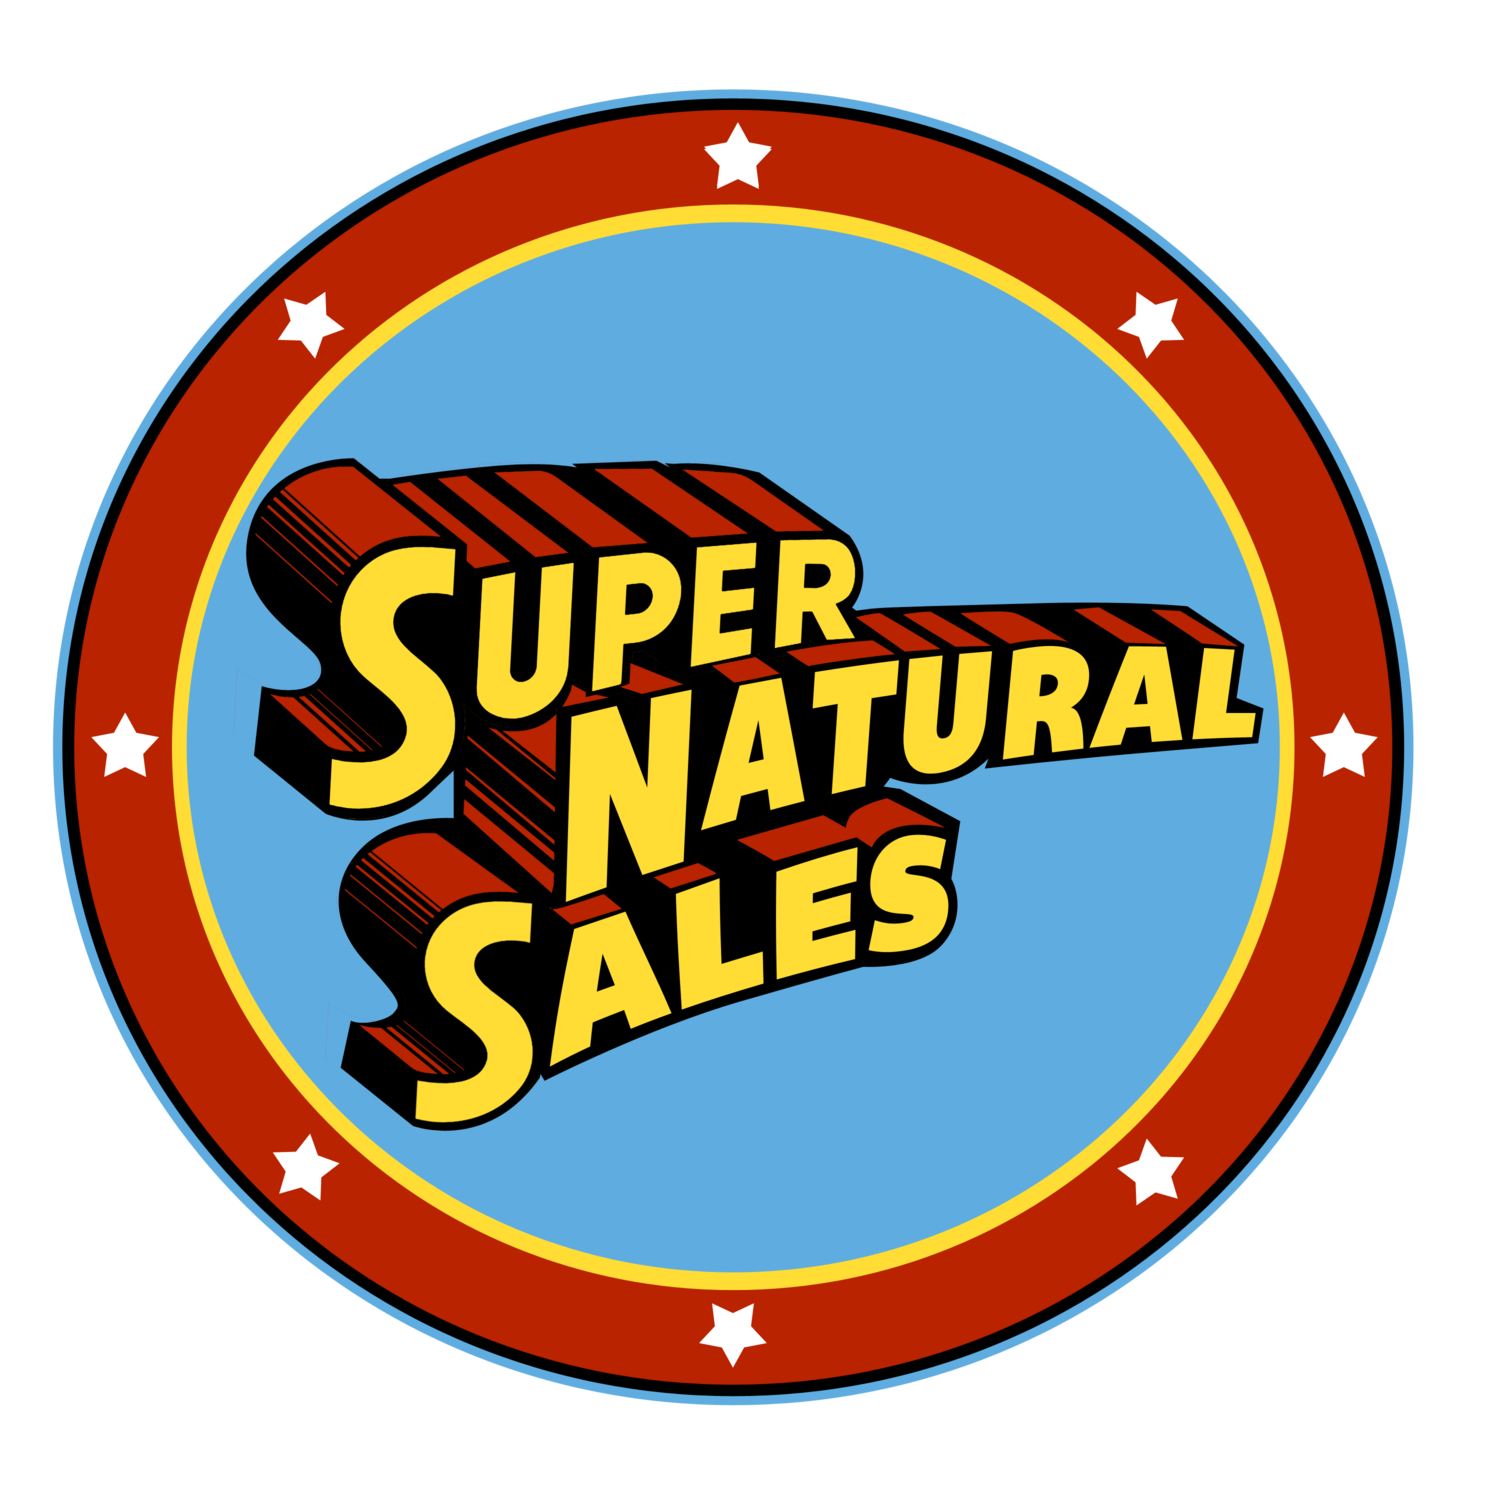 Super Natural Sales